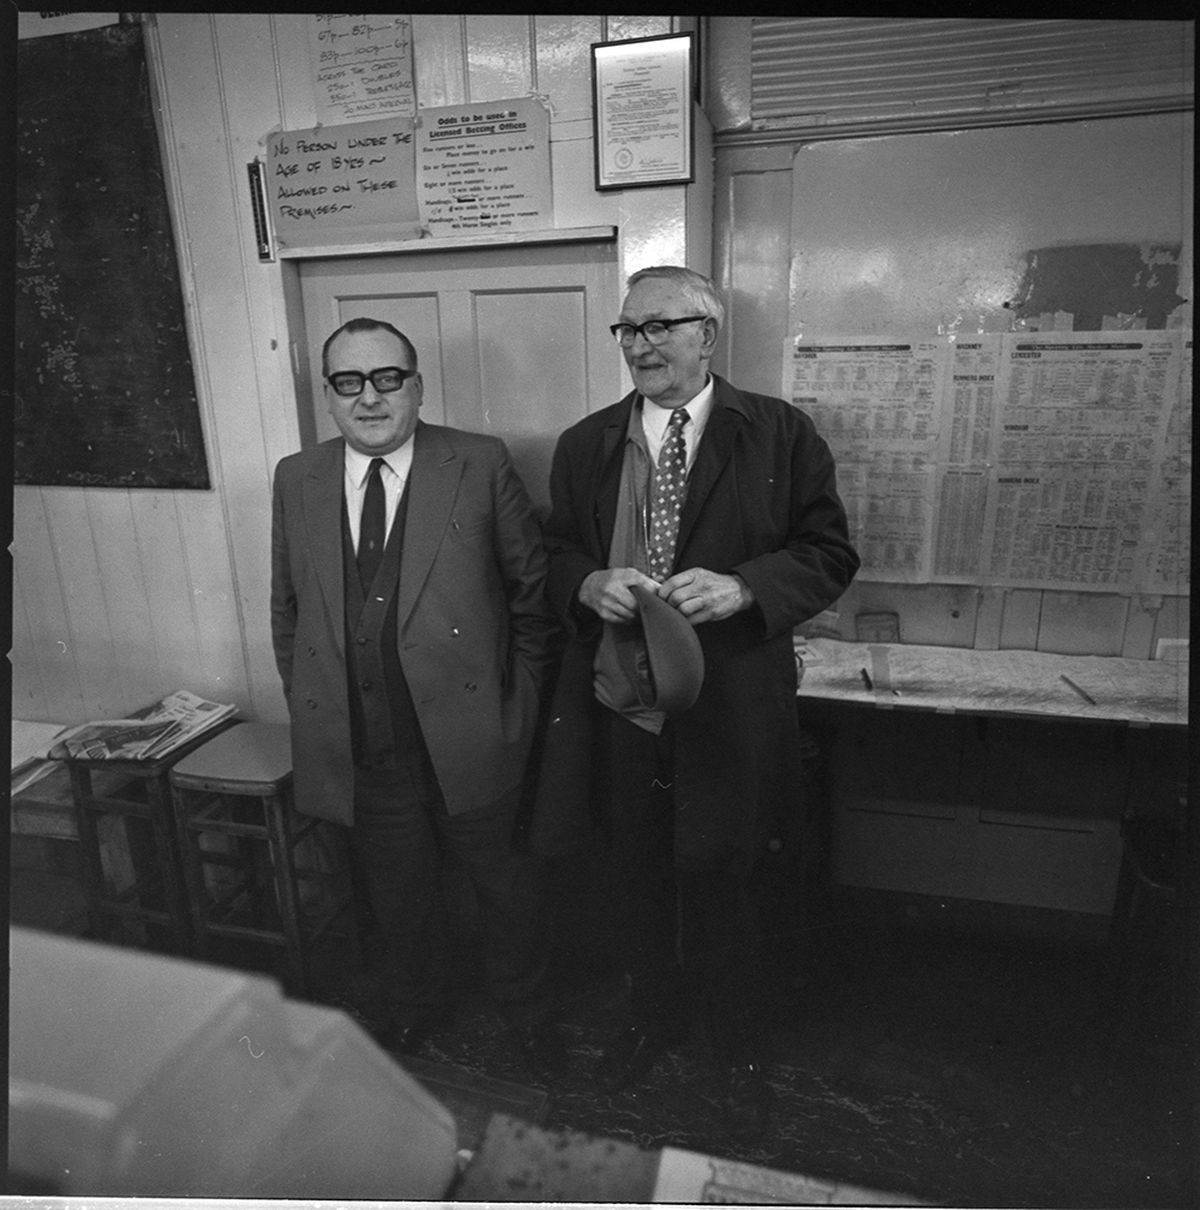 Inside Jack Smith's bookies – who are these two men?